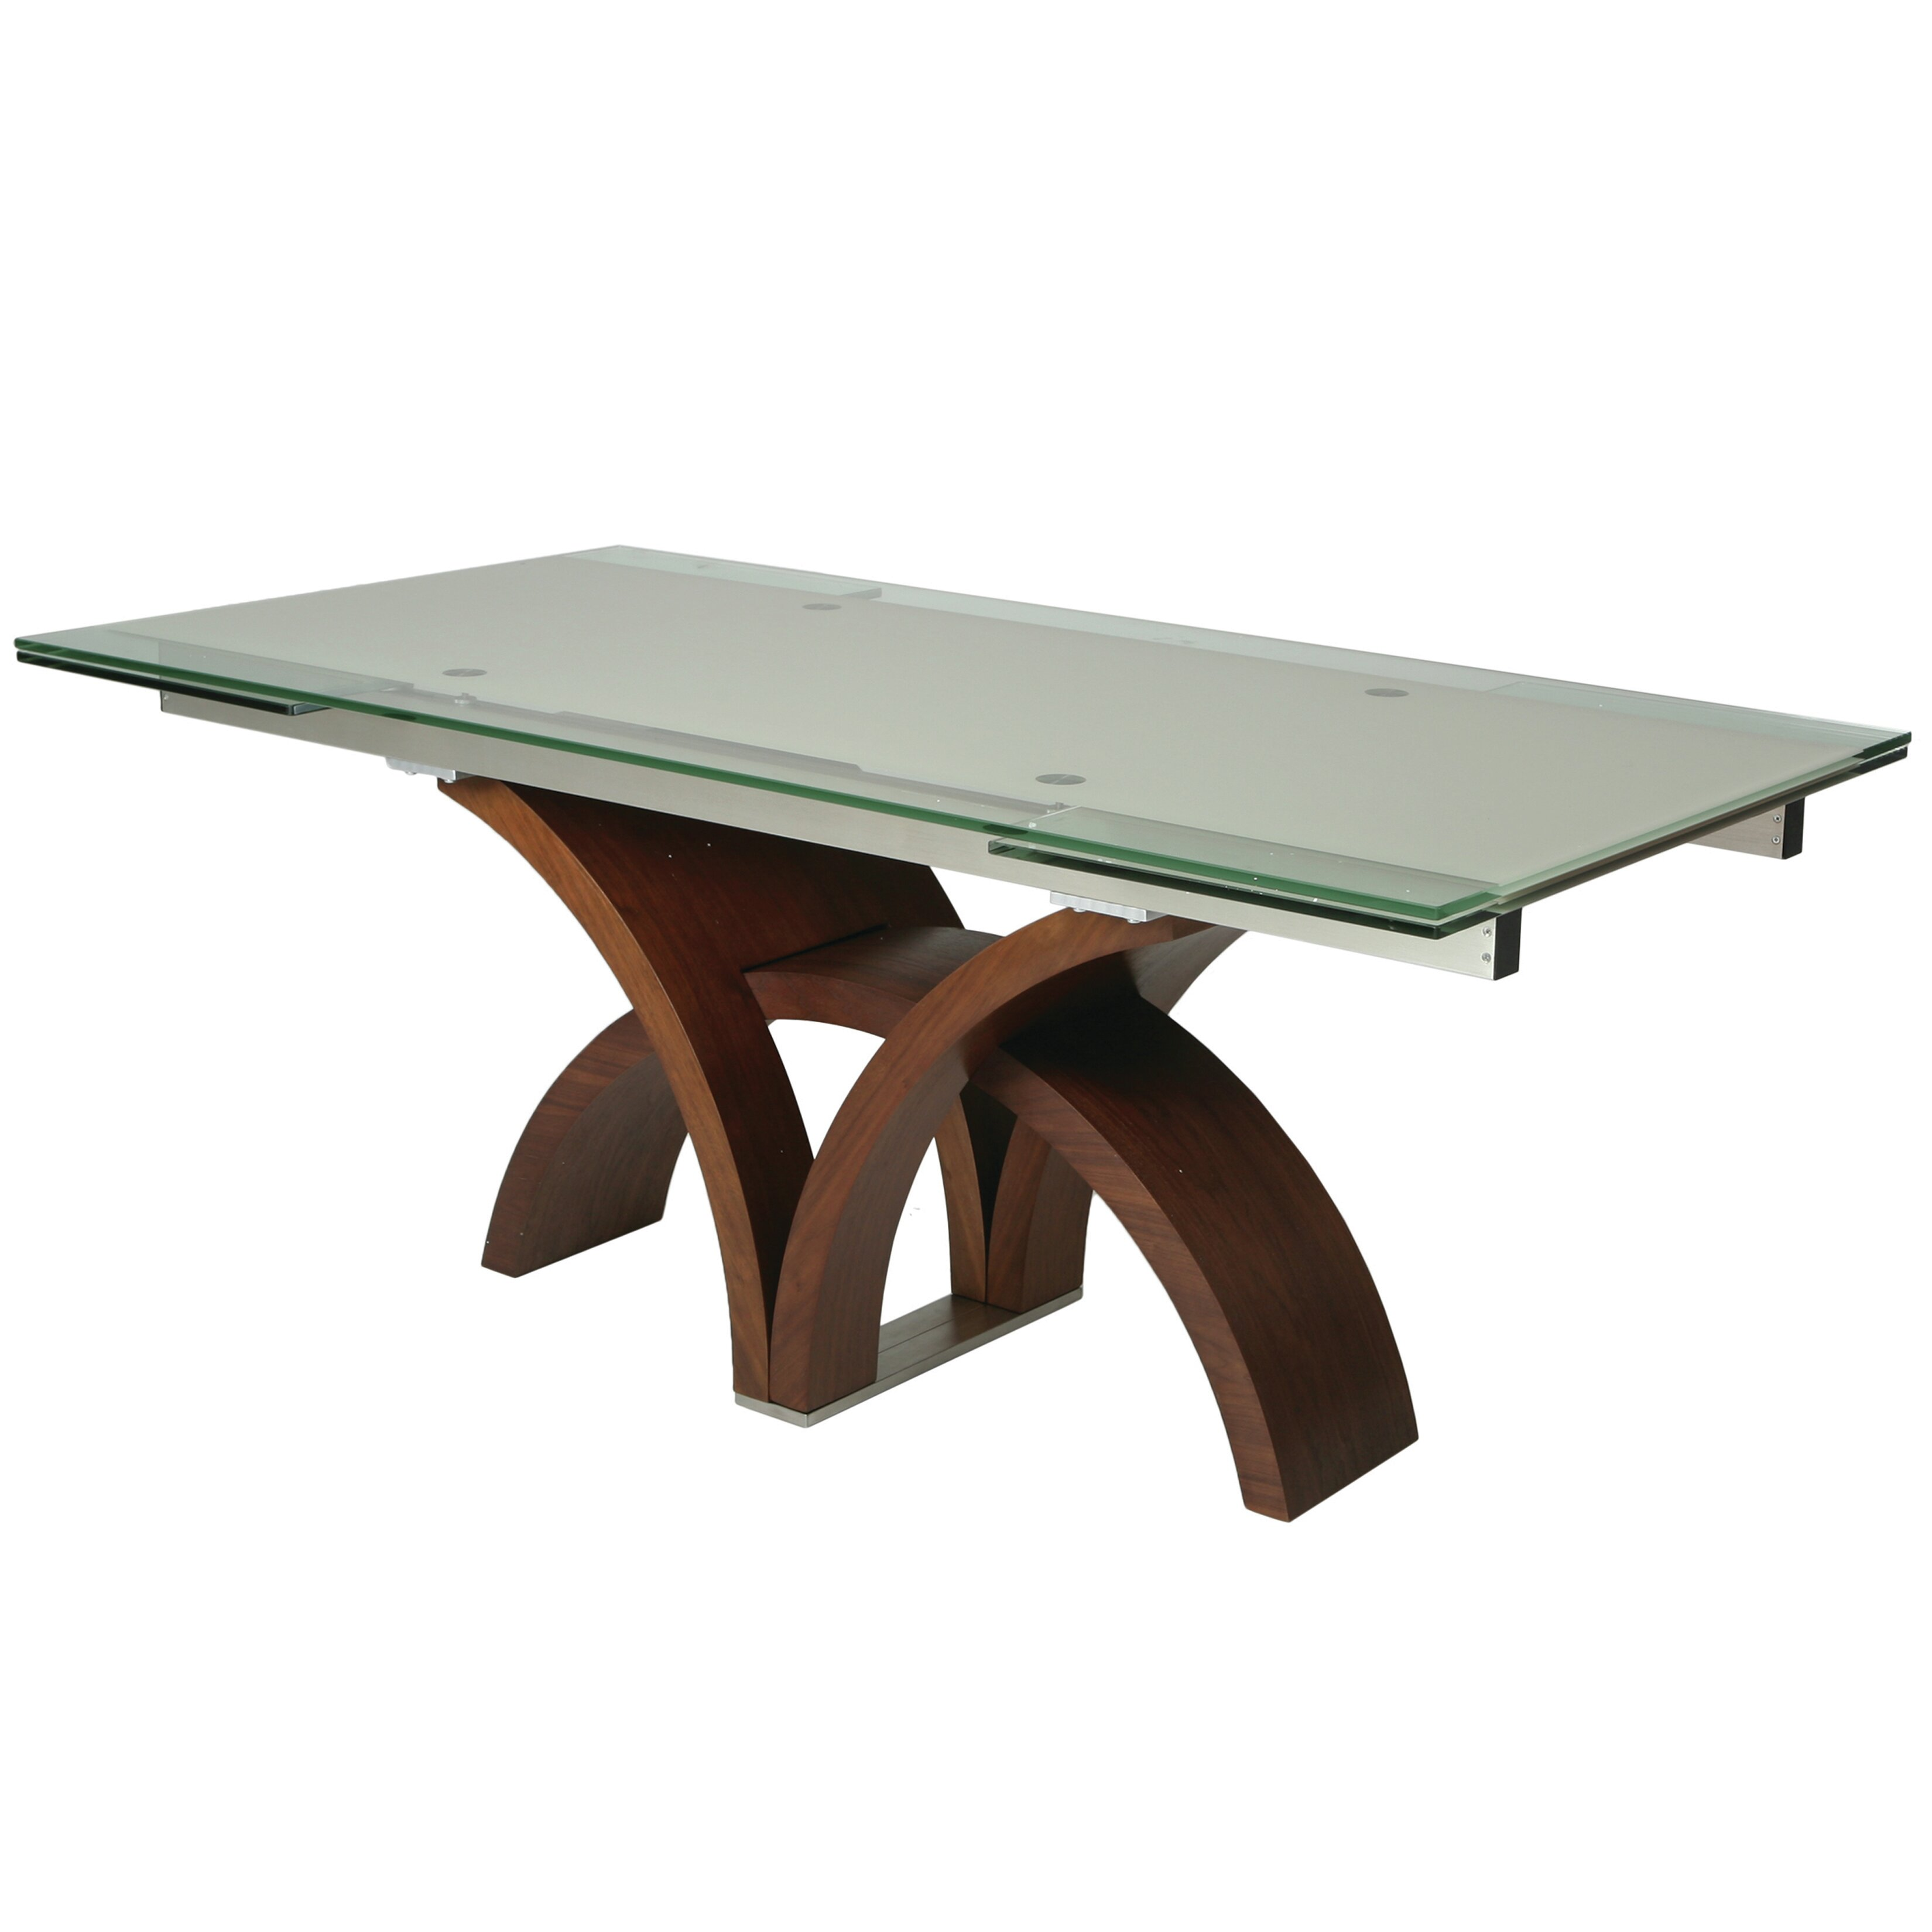 Patio Furniture Store Fountain Valley: Impacterra Fountain Valley Extendable Dining Table